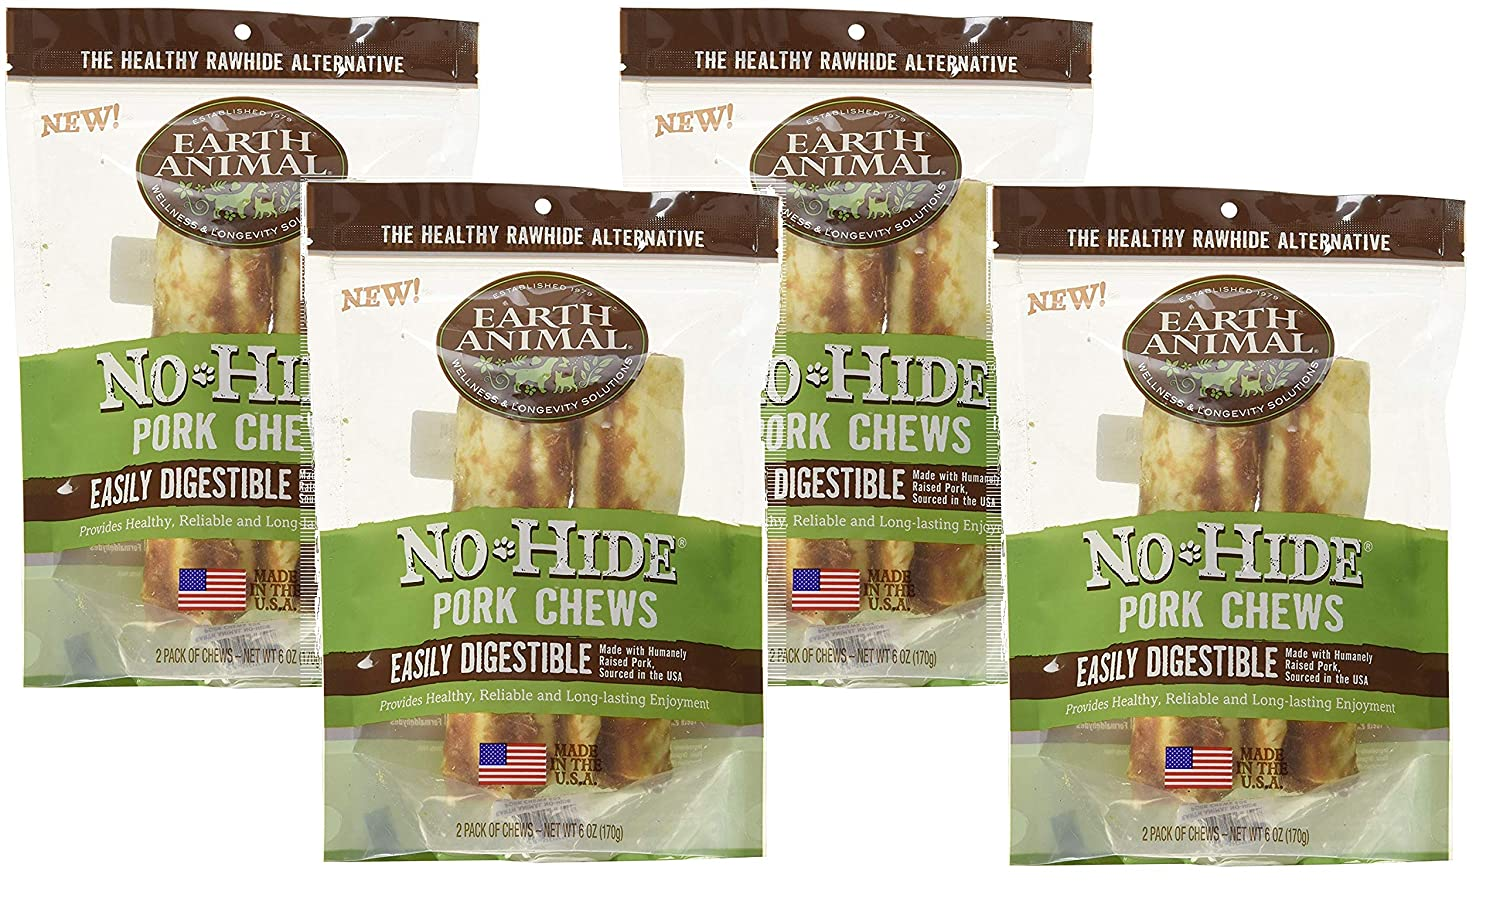 Earth Animal 6 Pack of No-Hide Pork Chews, 7 Each